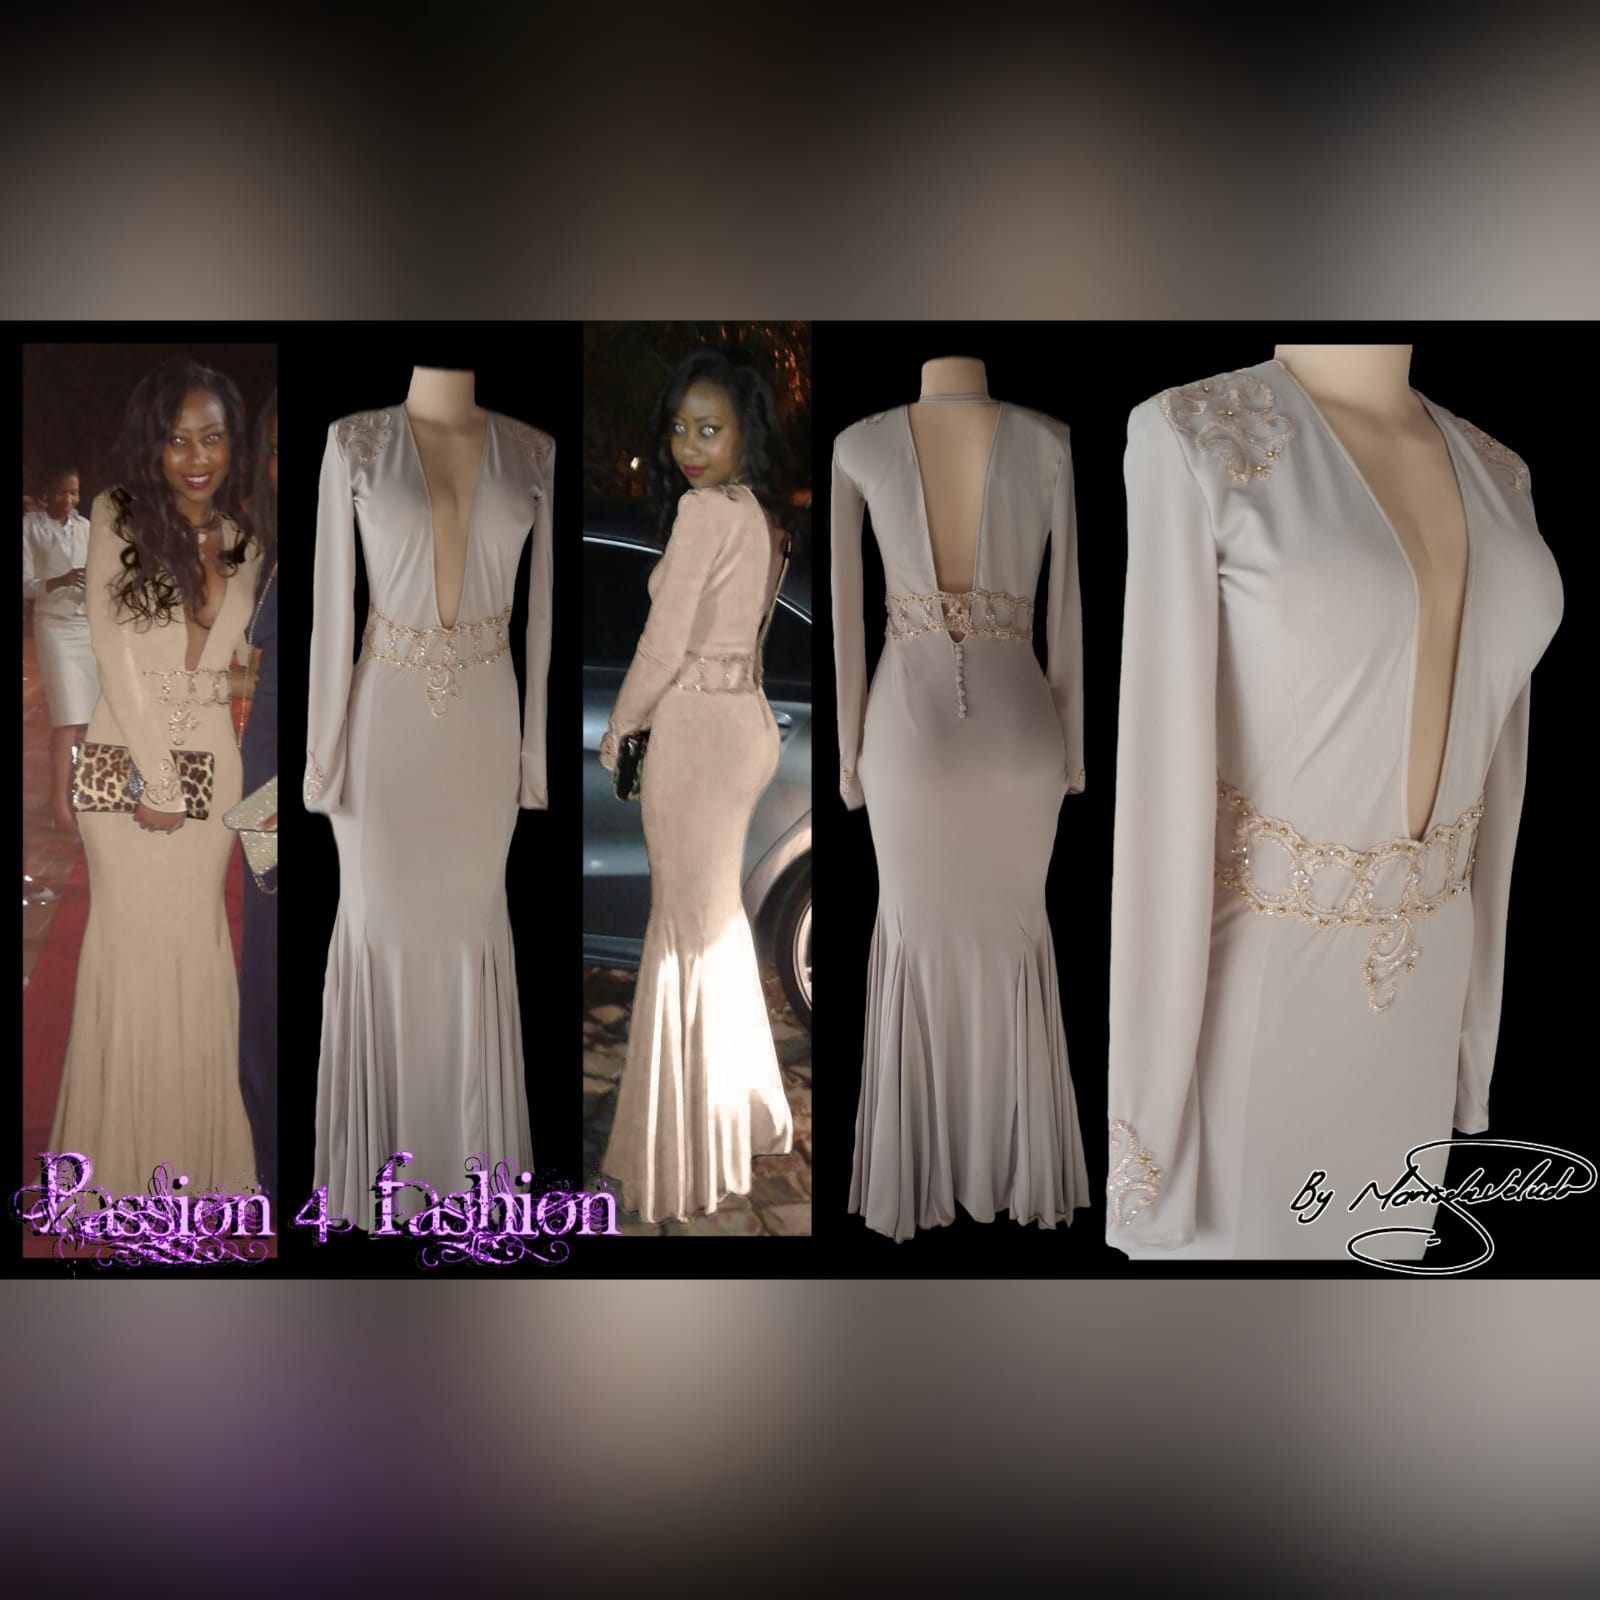 Plunging neckline beige prom dance dress 4 beige soft mermaid, prom dance dress with a plunging neckline and a v back. With long sleeves, detailed with gold applique, with gold beads, creating a belt. Applique on the shoulders and sleeve cuffs.